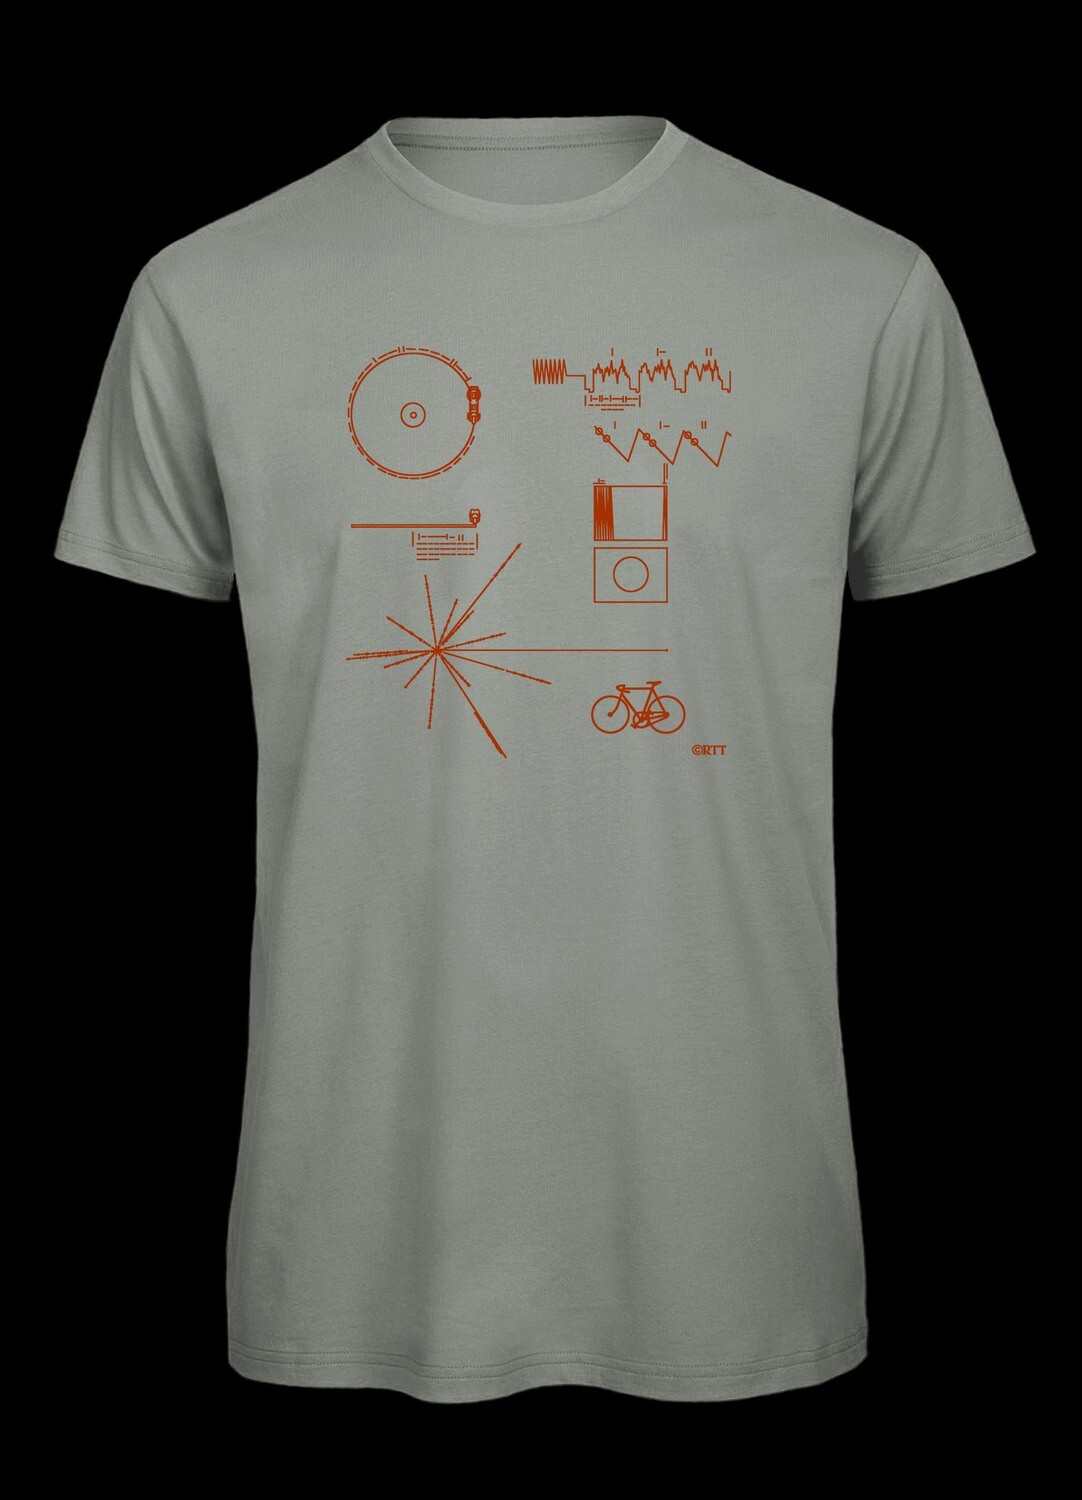 Voyager with bike, T-Shirt